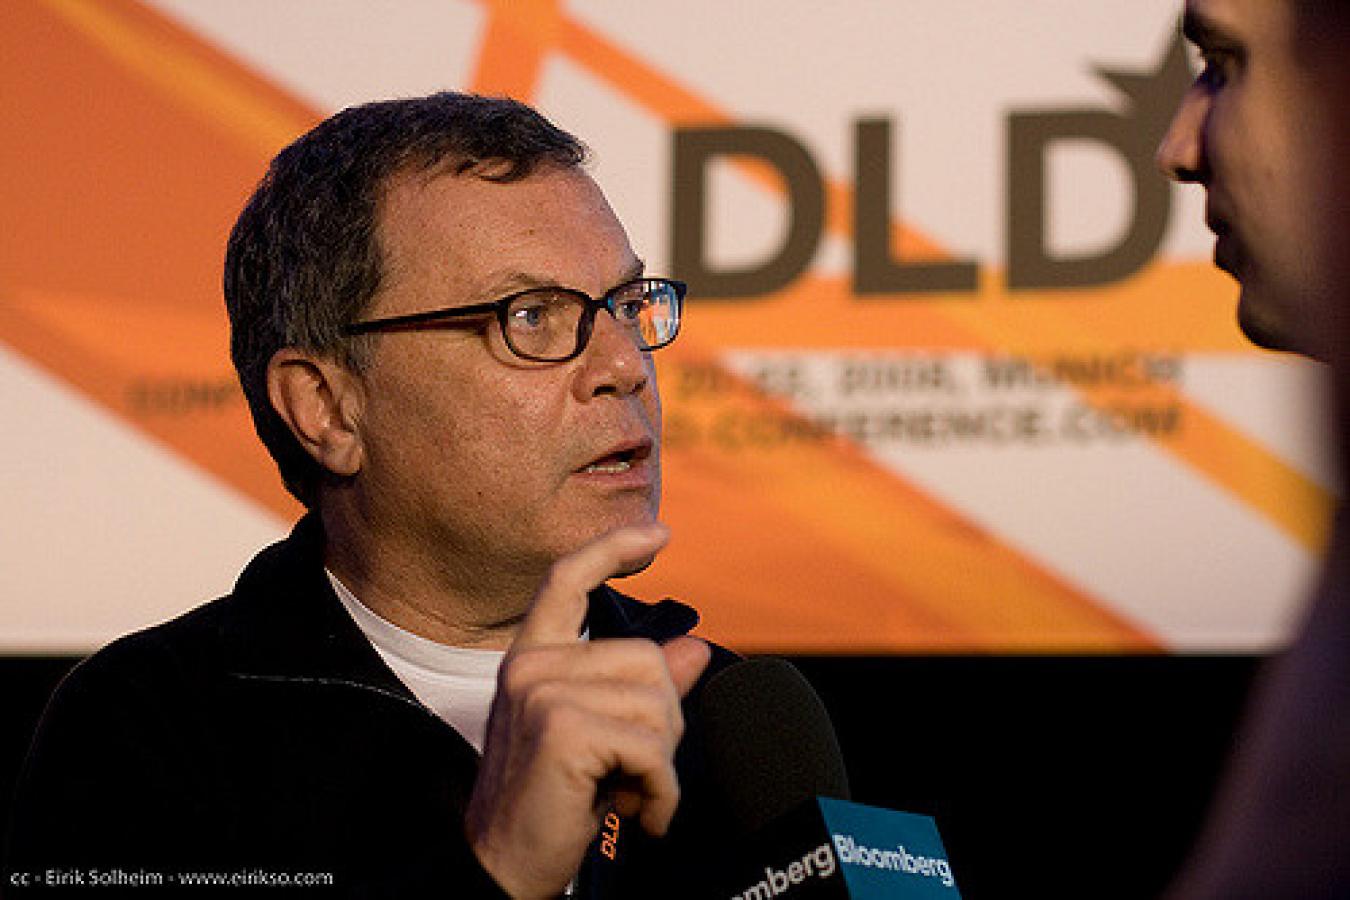 Sir Martin Sorrell head of WPP who is of jewish ancestry and whose family was from Russia, Poland and Romania